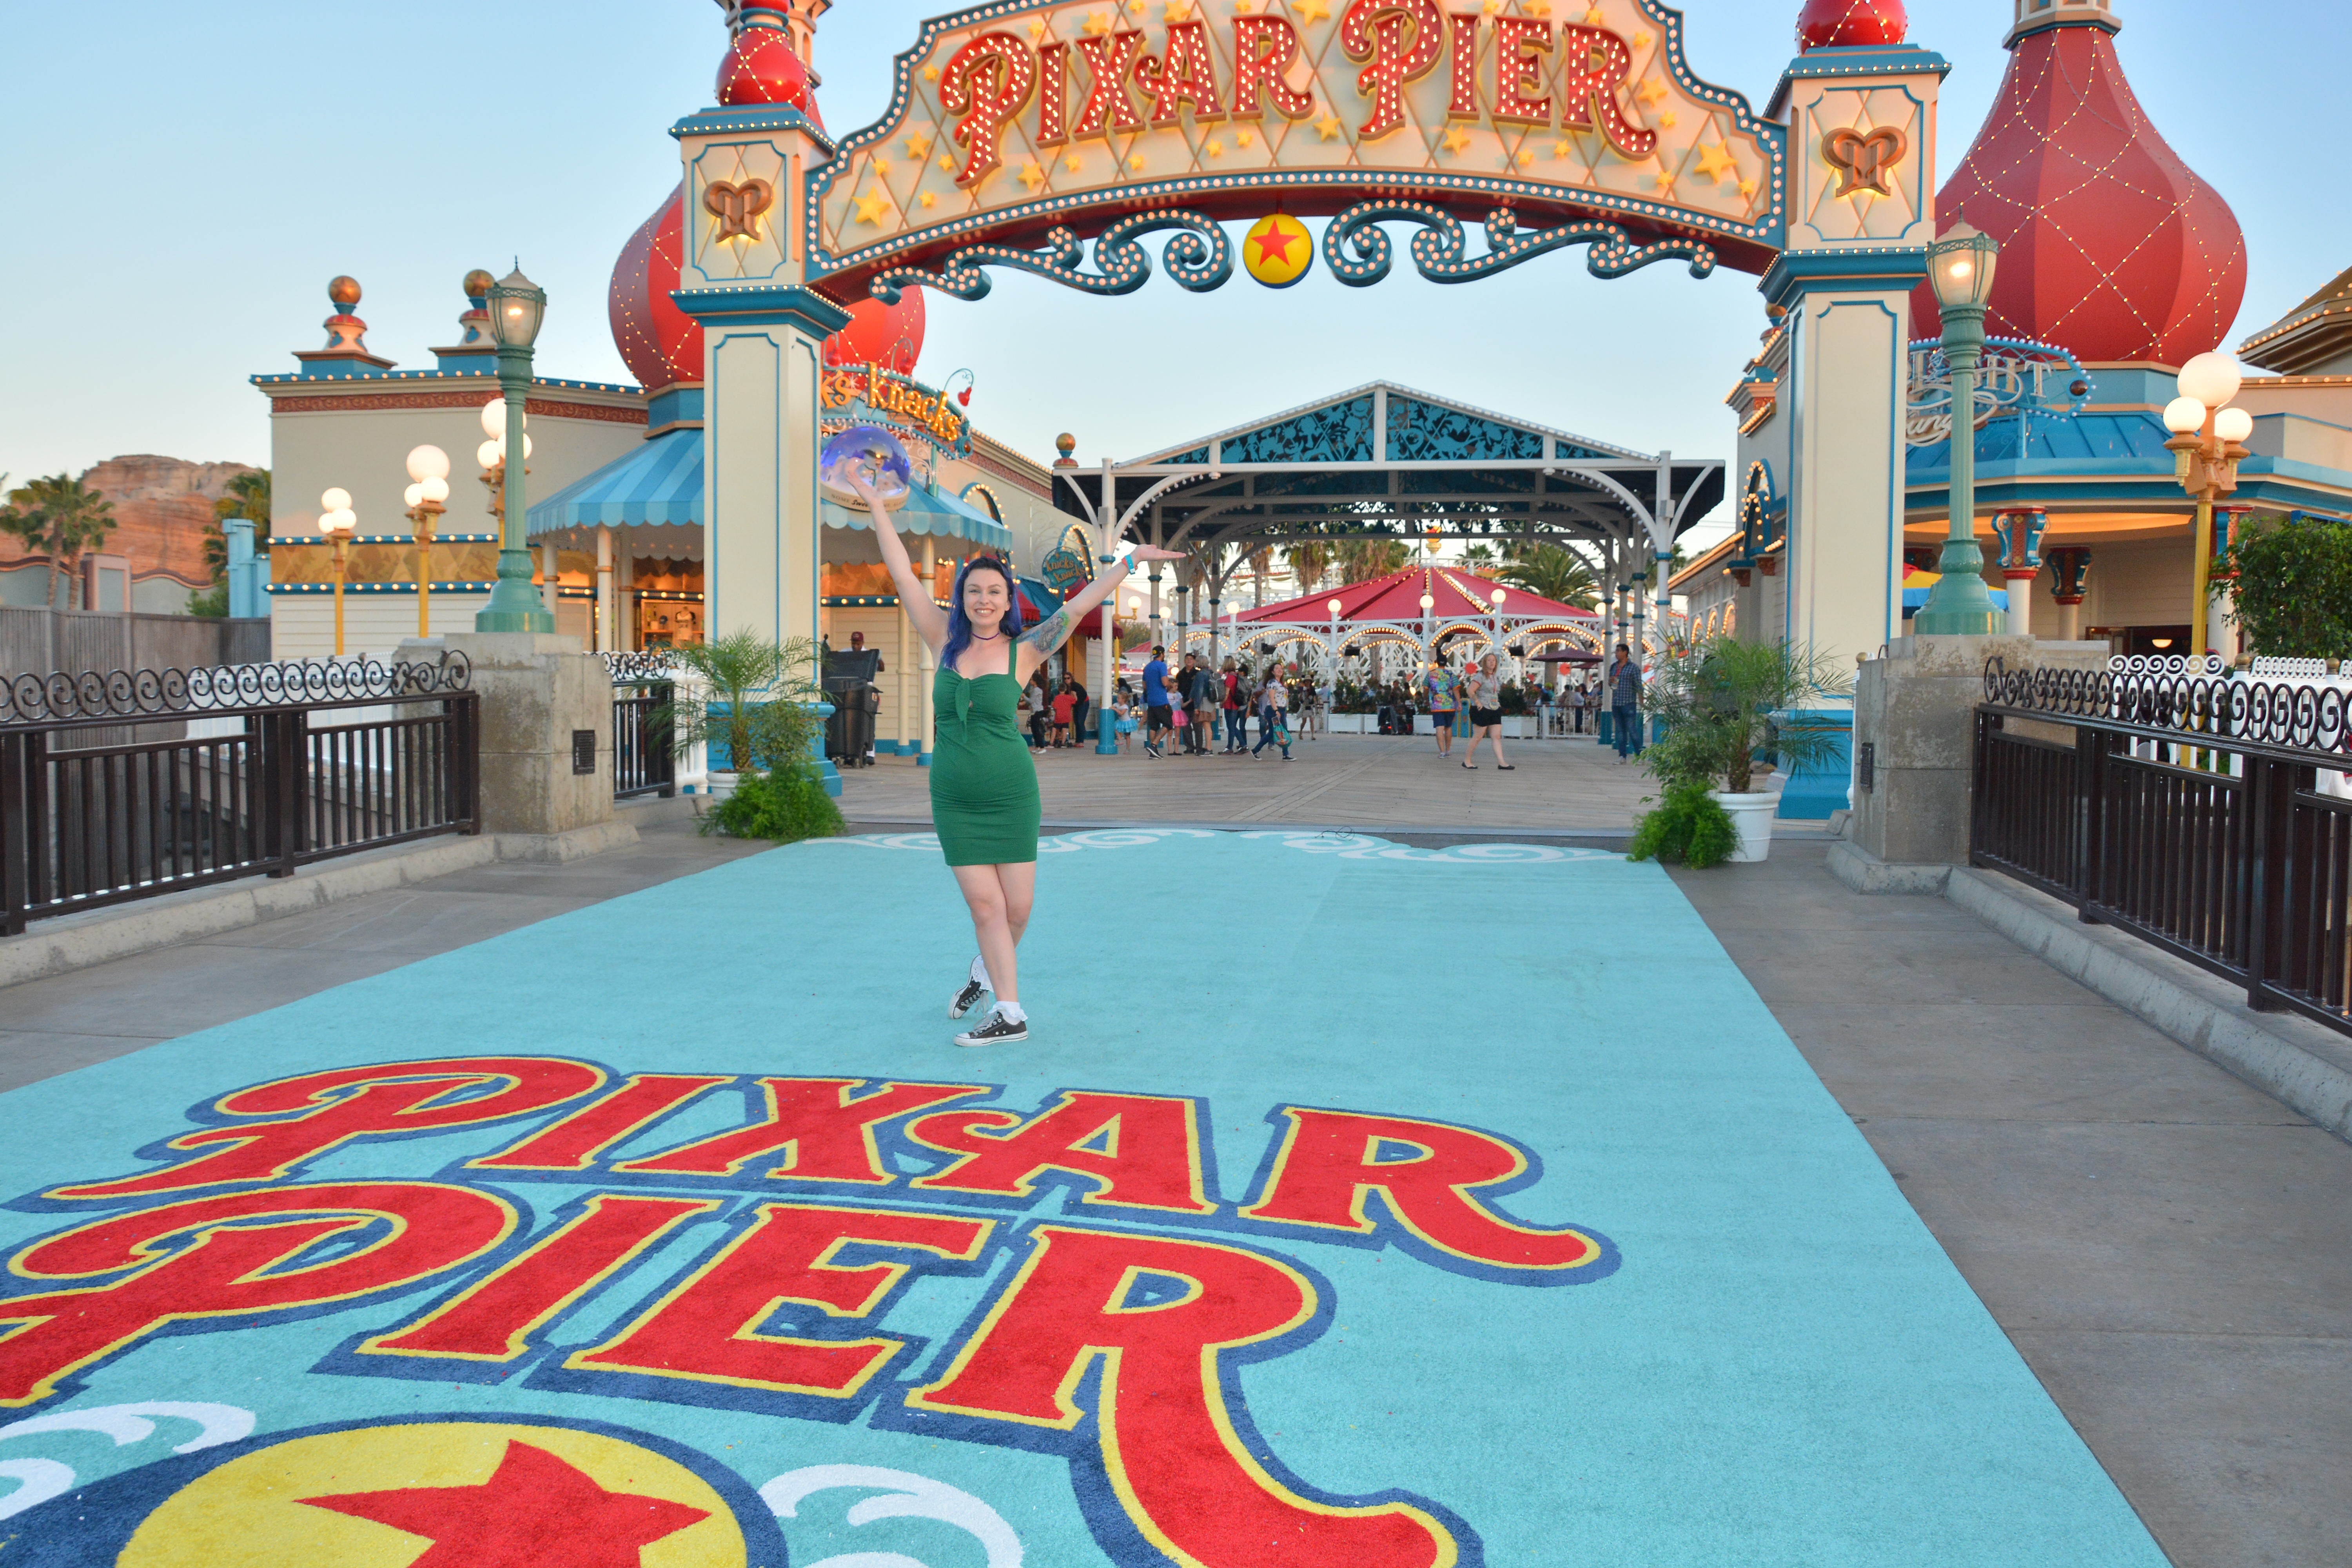 $300 Pixar Pier Premiere – Why VIP-Style Parties Are the Way To Experience New Offerings